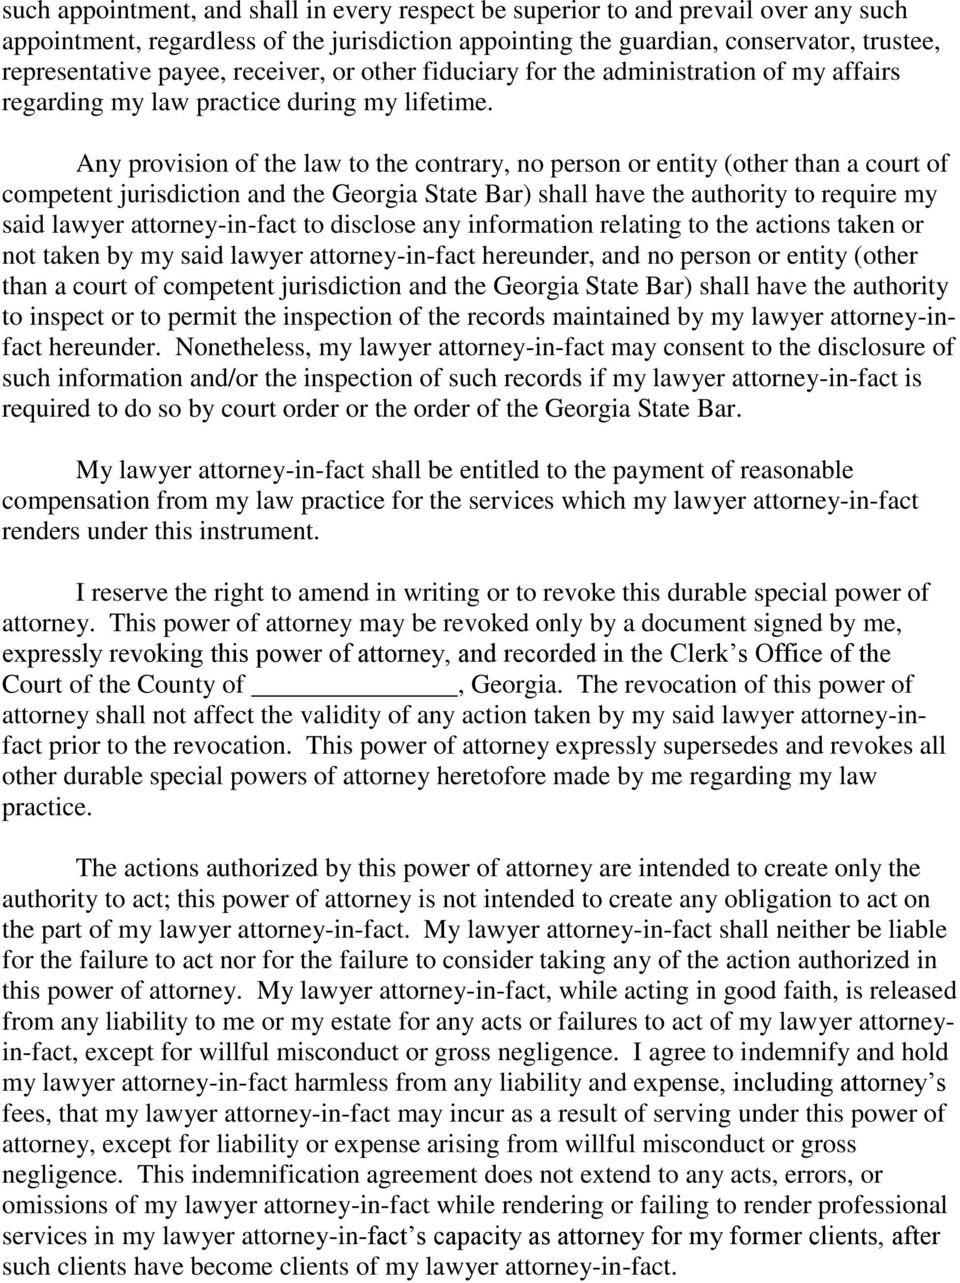 Any provision of the law to the contrary, no person or entity (other than a court of competent jurisdiction and the Georgia State Bar) shall have the authority to require my said lawyer